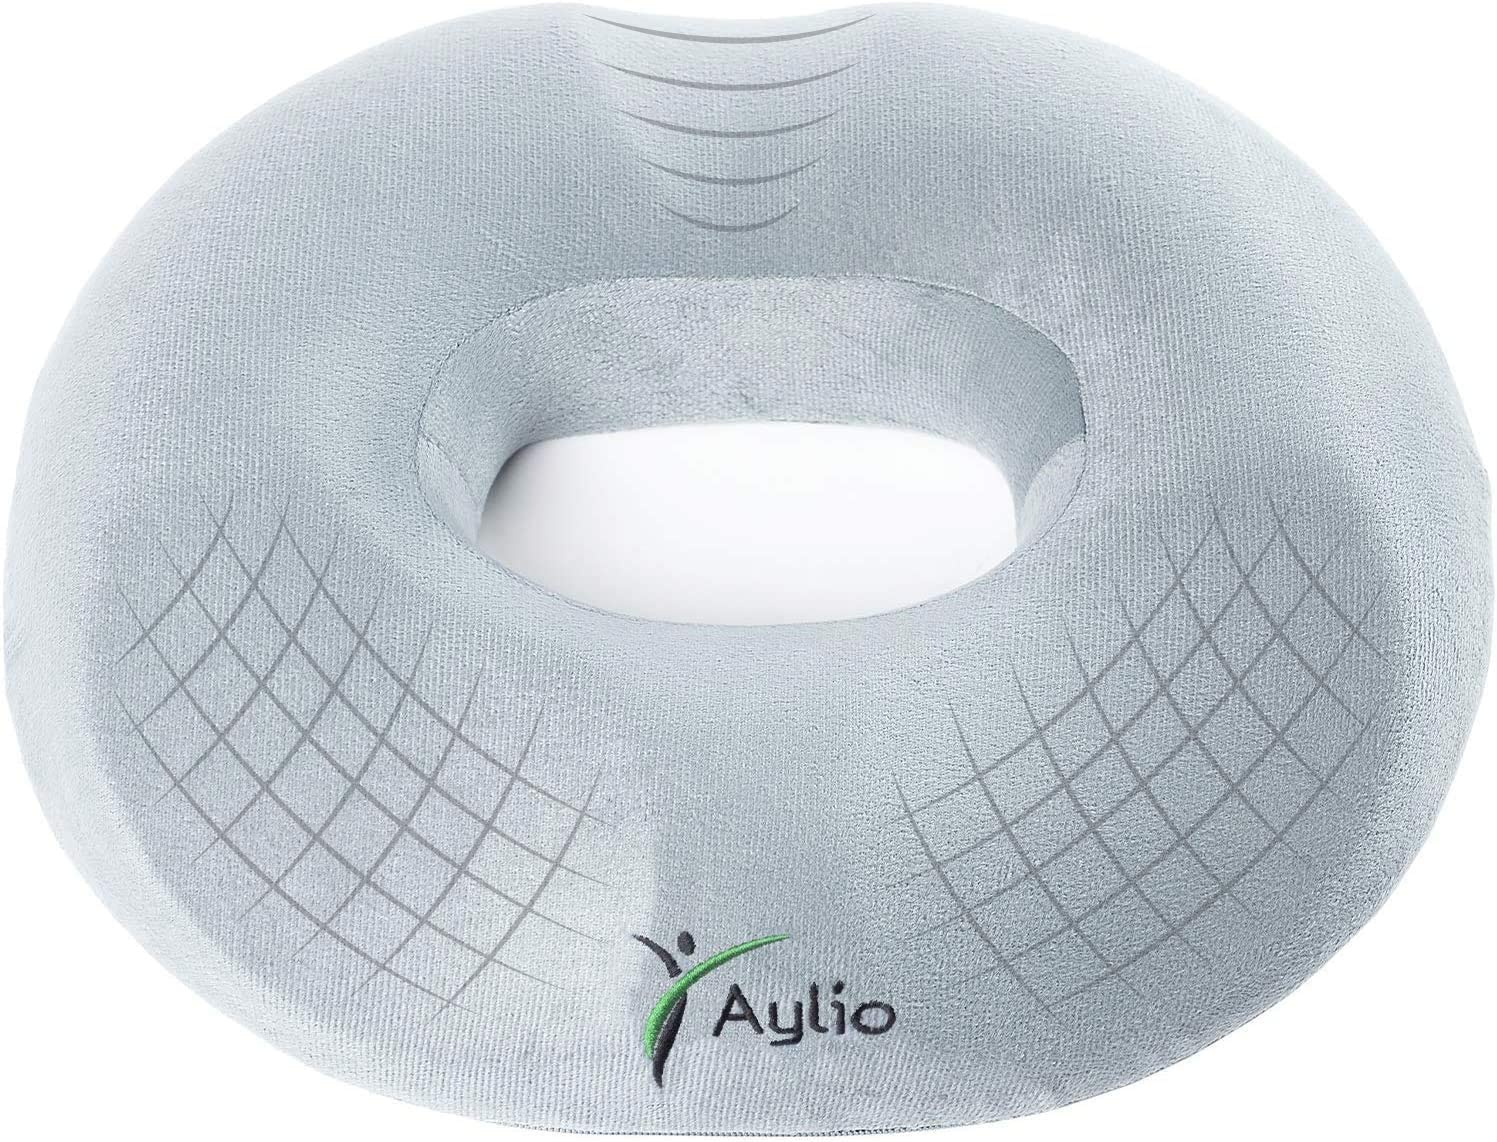 Aylio Firm Donut Pillow Seat Cushion for Hemorrhoids, Prostate Relief, Pregnancy Pain, Pressure Sores: Home & Kitchen